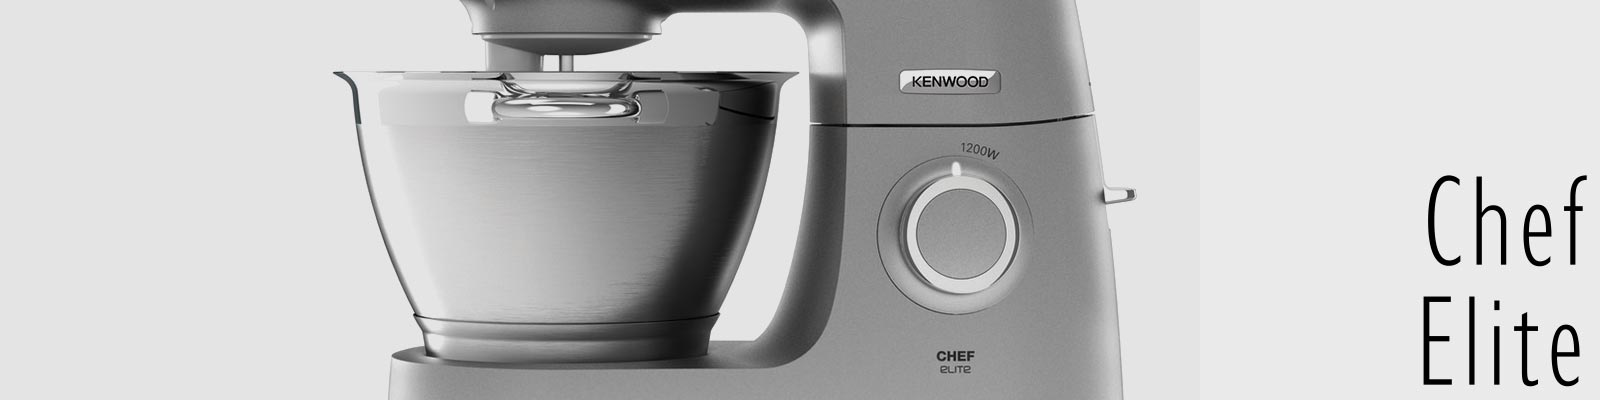 Kenwood Chef Elite Küchenmaschine